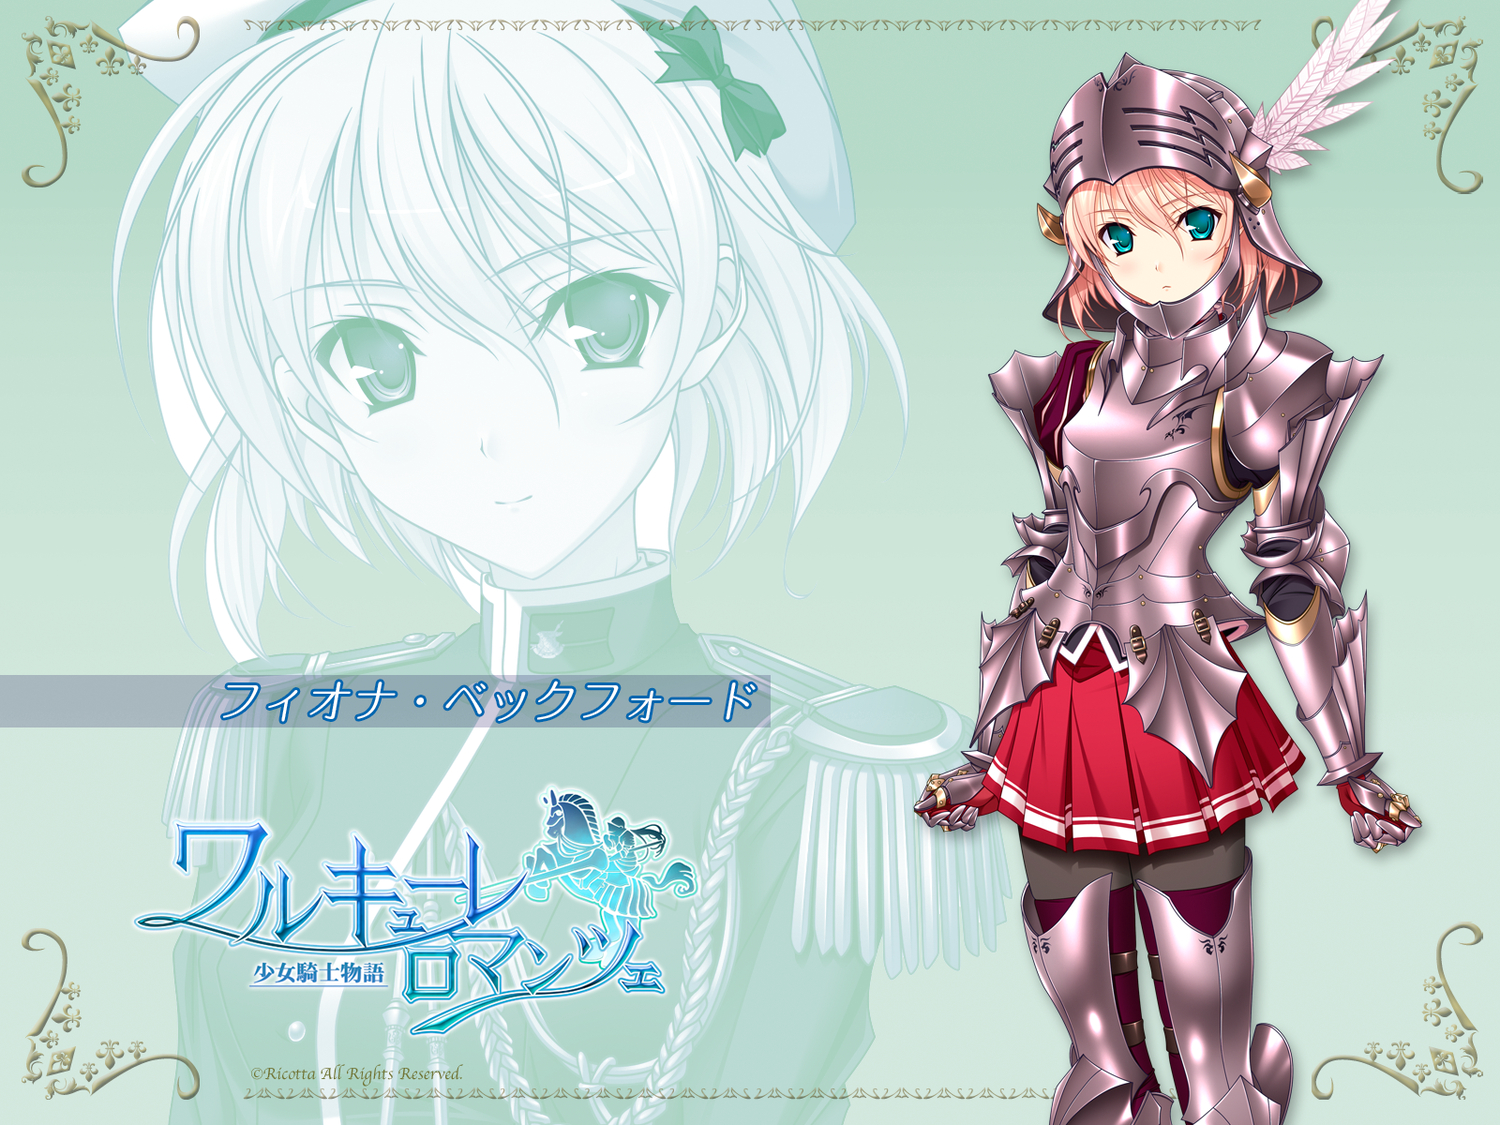 armor fiona_beckford green_eyes komori_kei pink_hair walkure_romanze